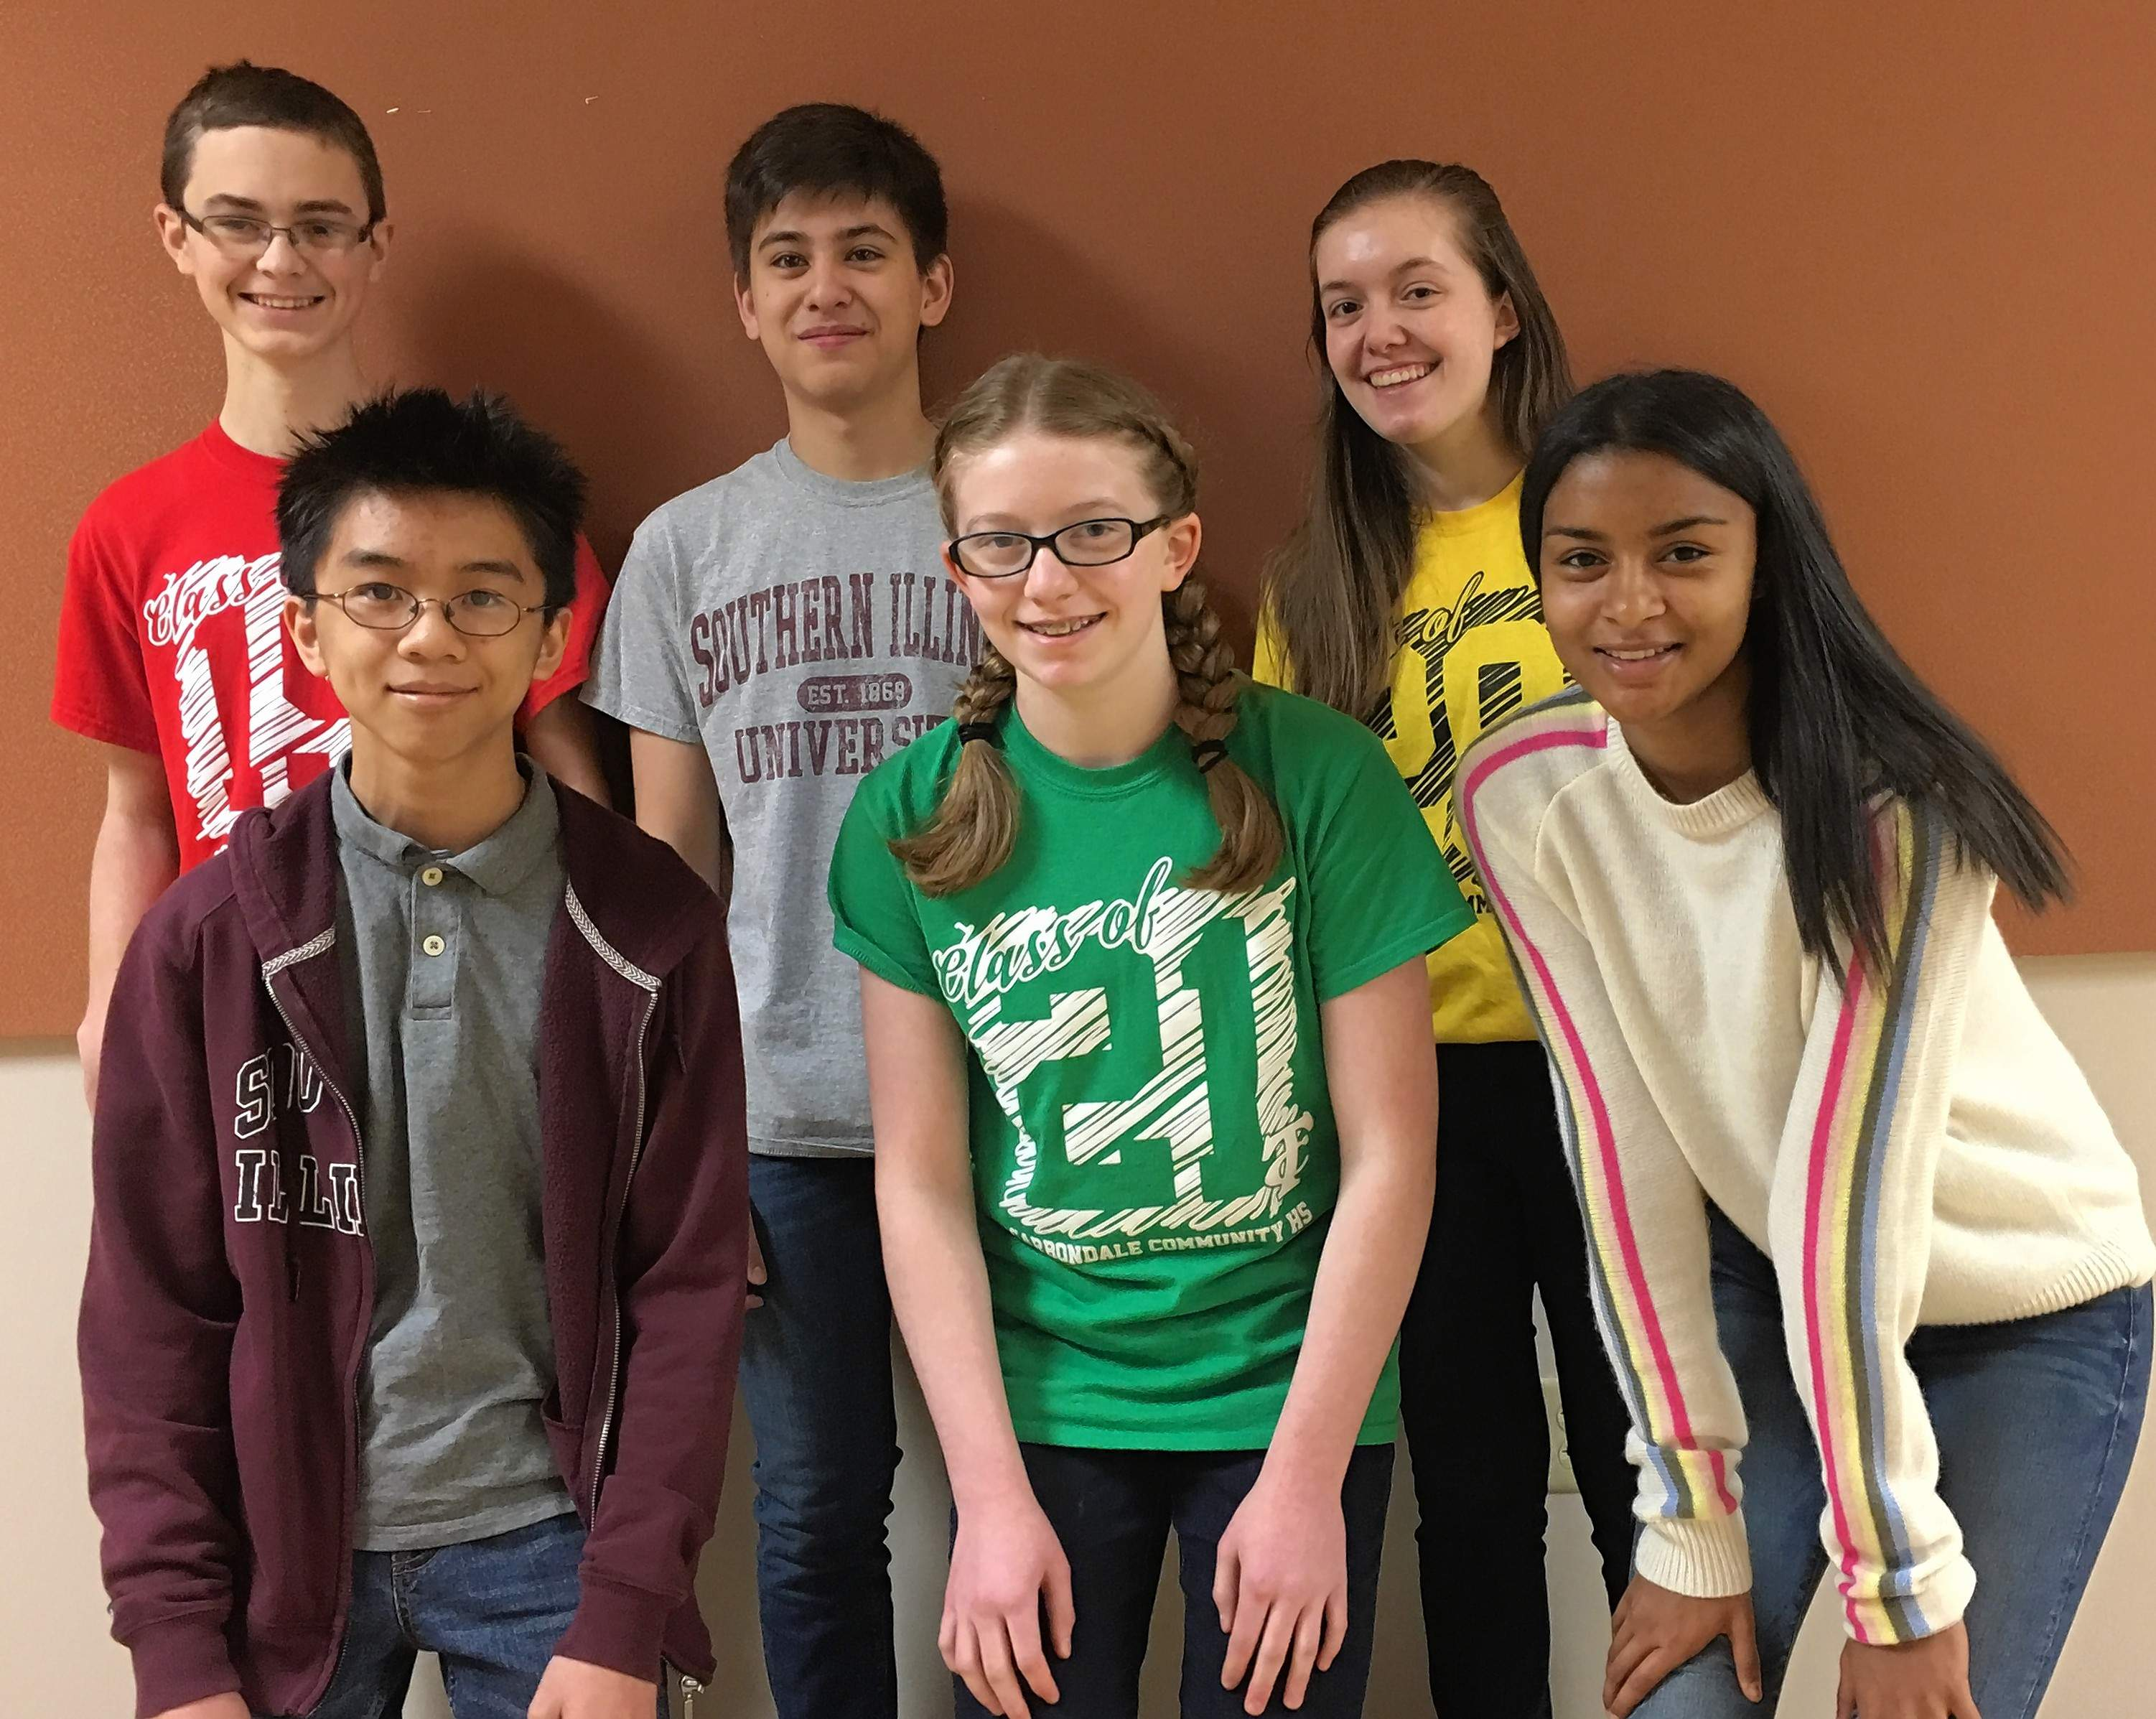 The 2018 scholarship winners for the Garwin Family Foundation's Carbondale Community High School (CCHS) Student Sponsorship Program for Talented Students in the Arts, Sciences and Math are (back row) Ian Kinsel, Eli Tsung, Gabriela Benyas, (front row) Charlie Du, Maya Benyas and Aisha Ruperto.